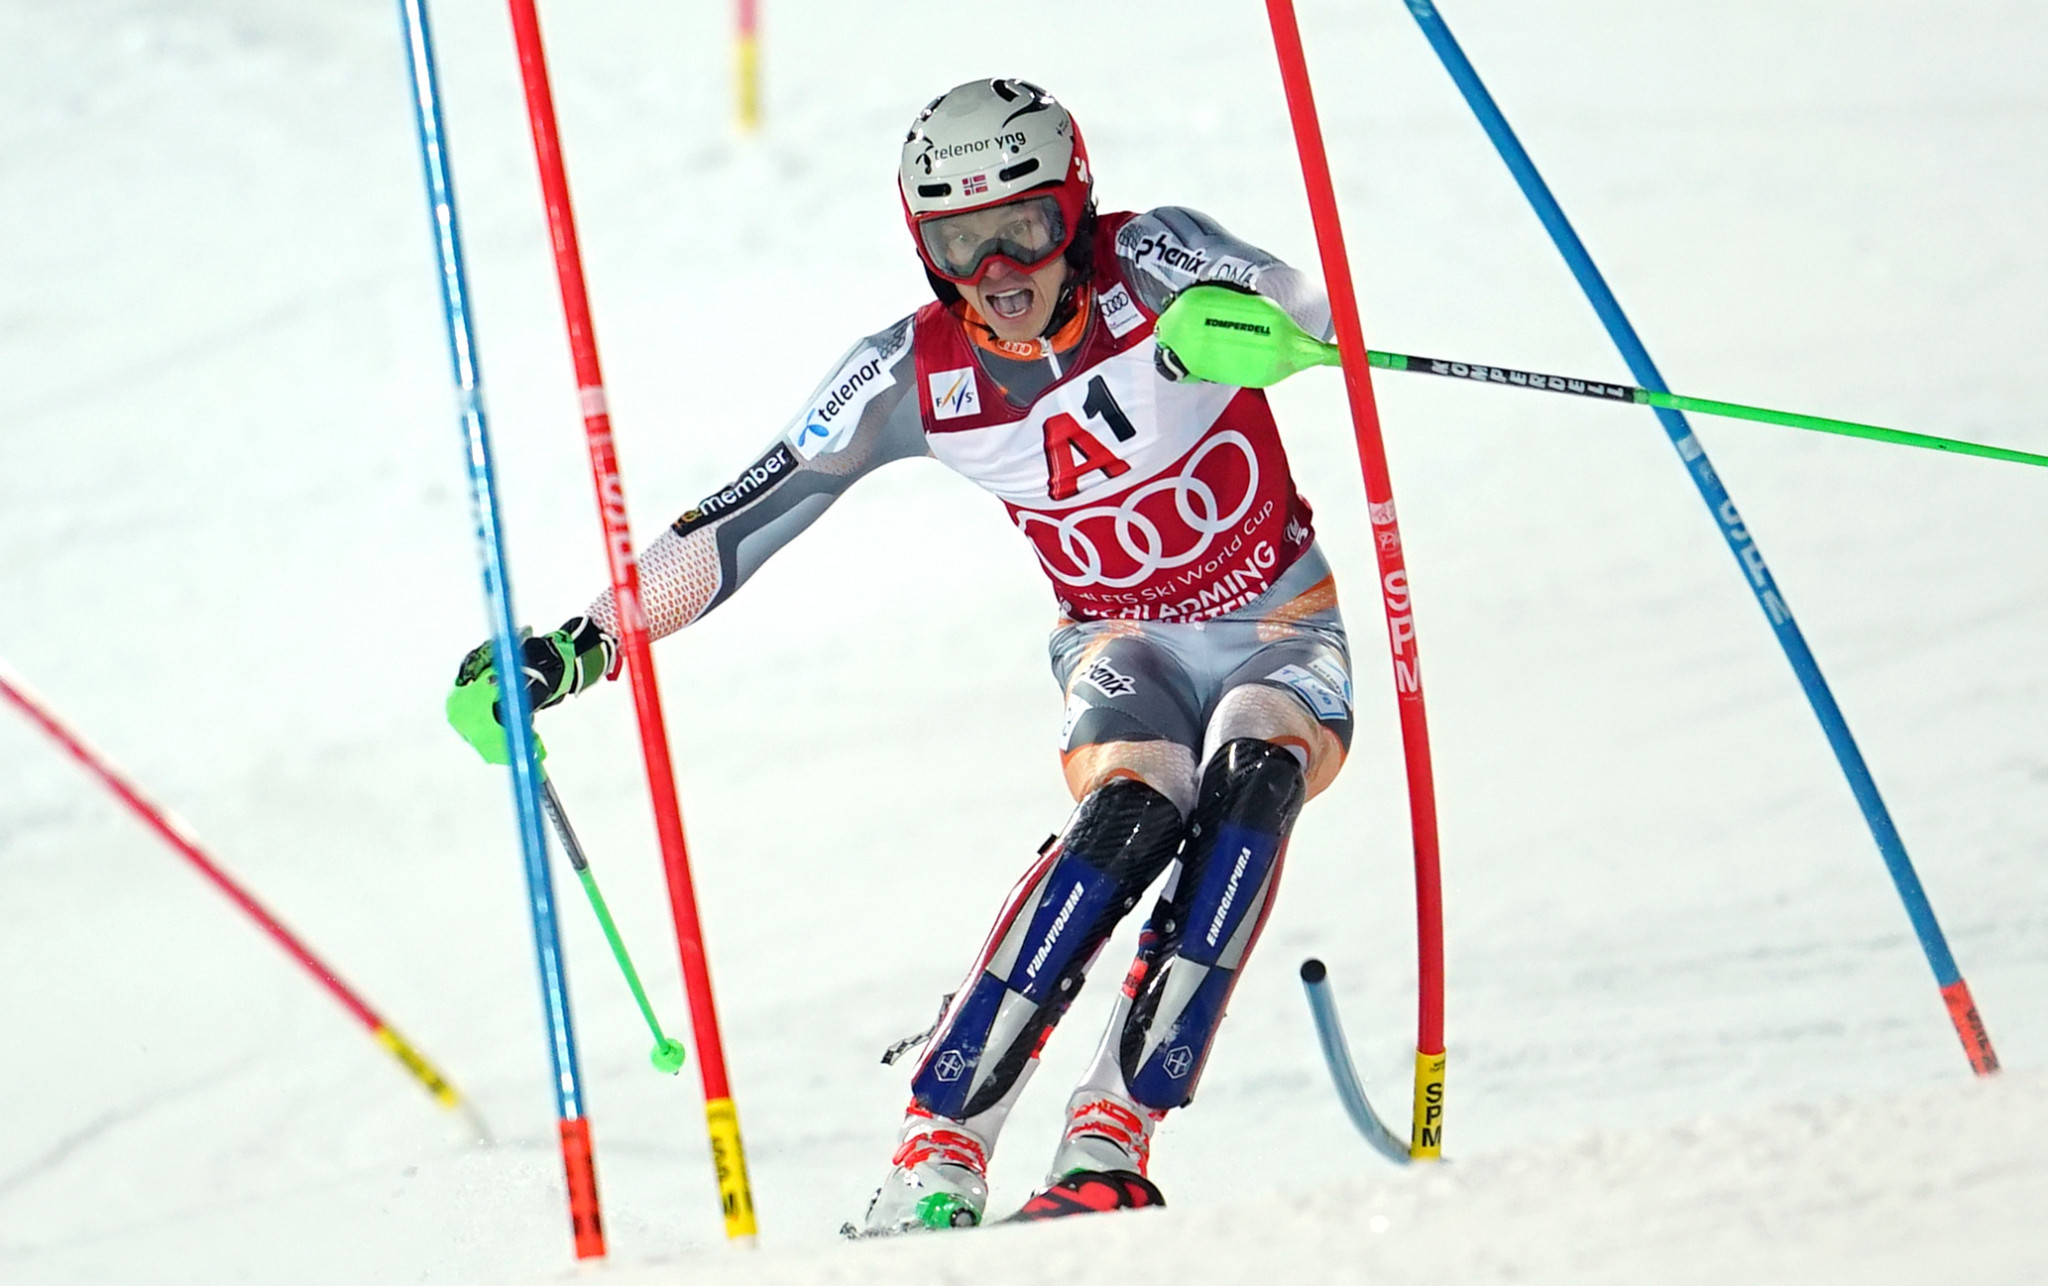 Garmisch-Partenkirchen braced to host FIS Alpine Ski World Cup